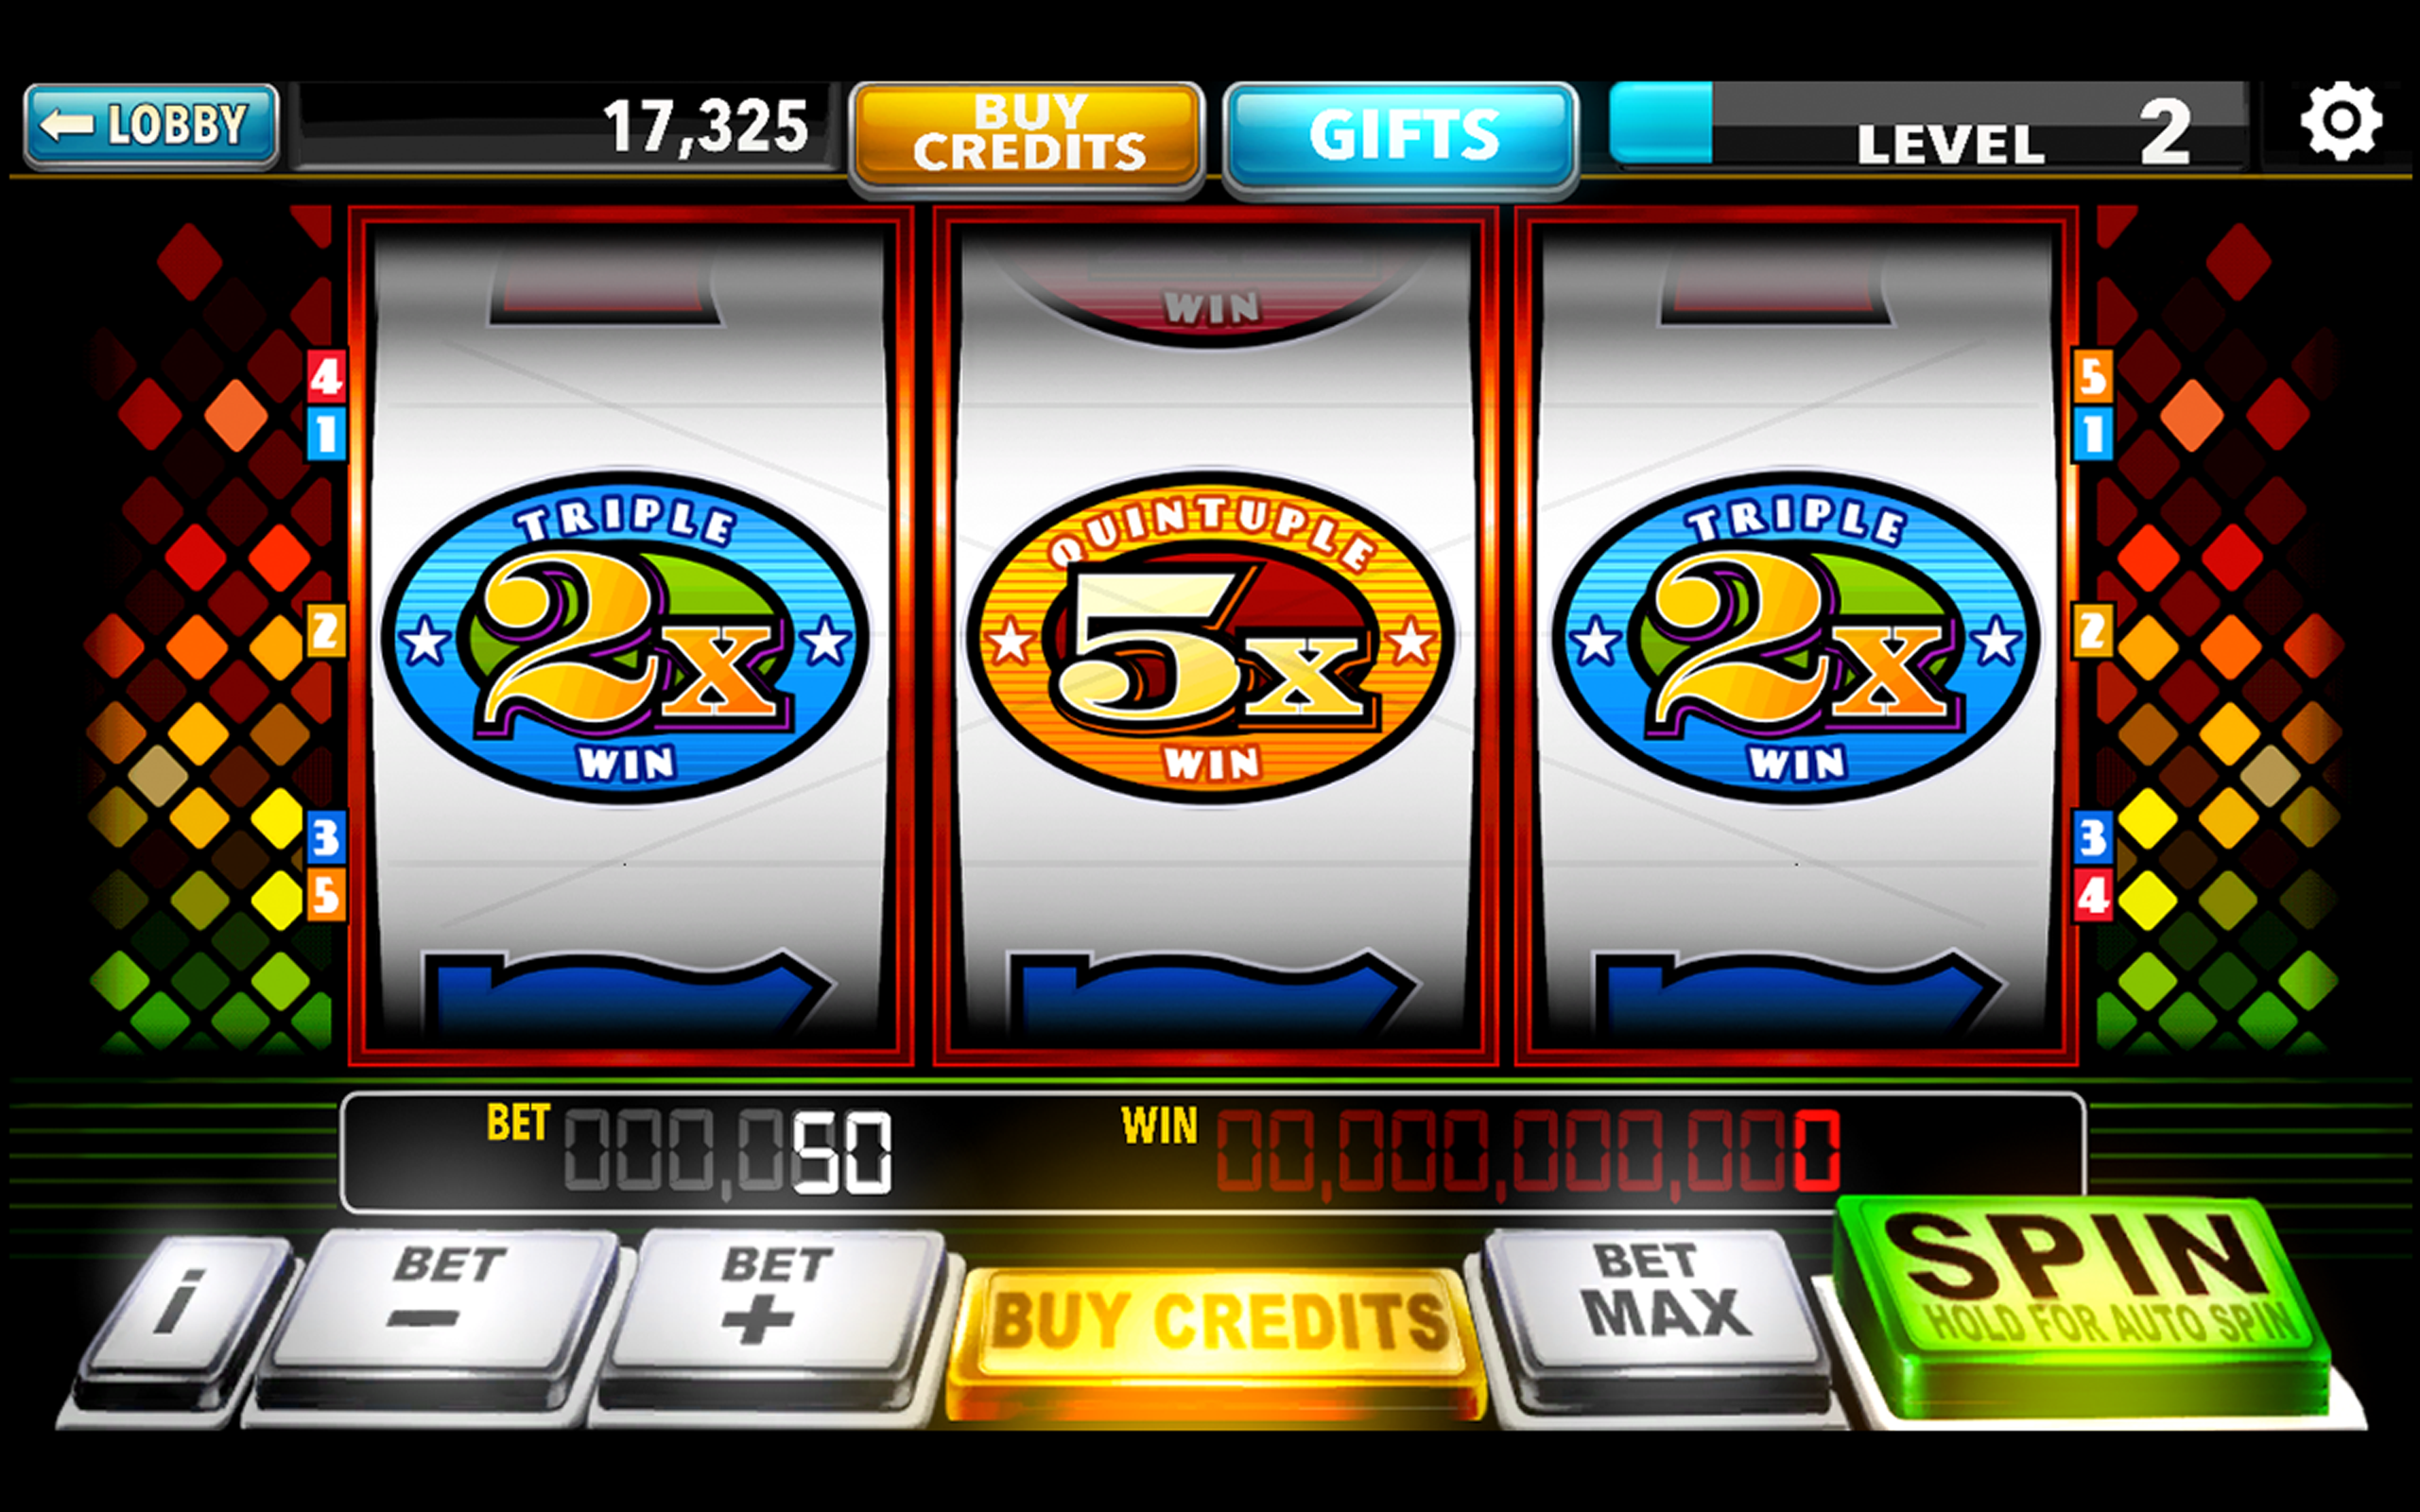 Play Slot Machines For Free Online